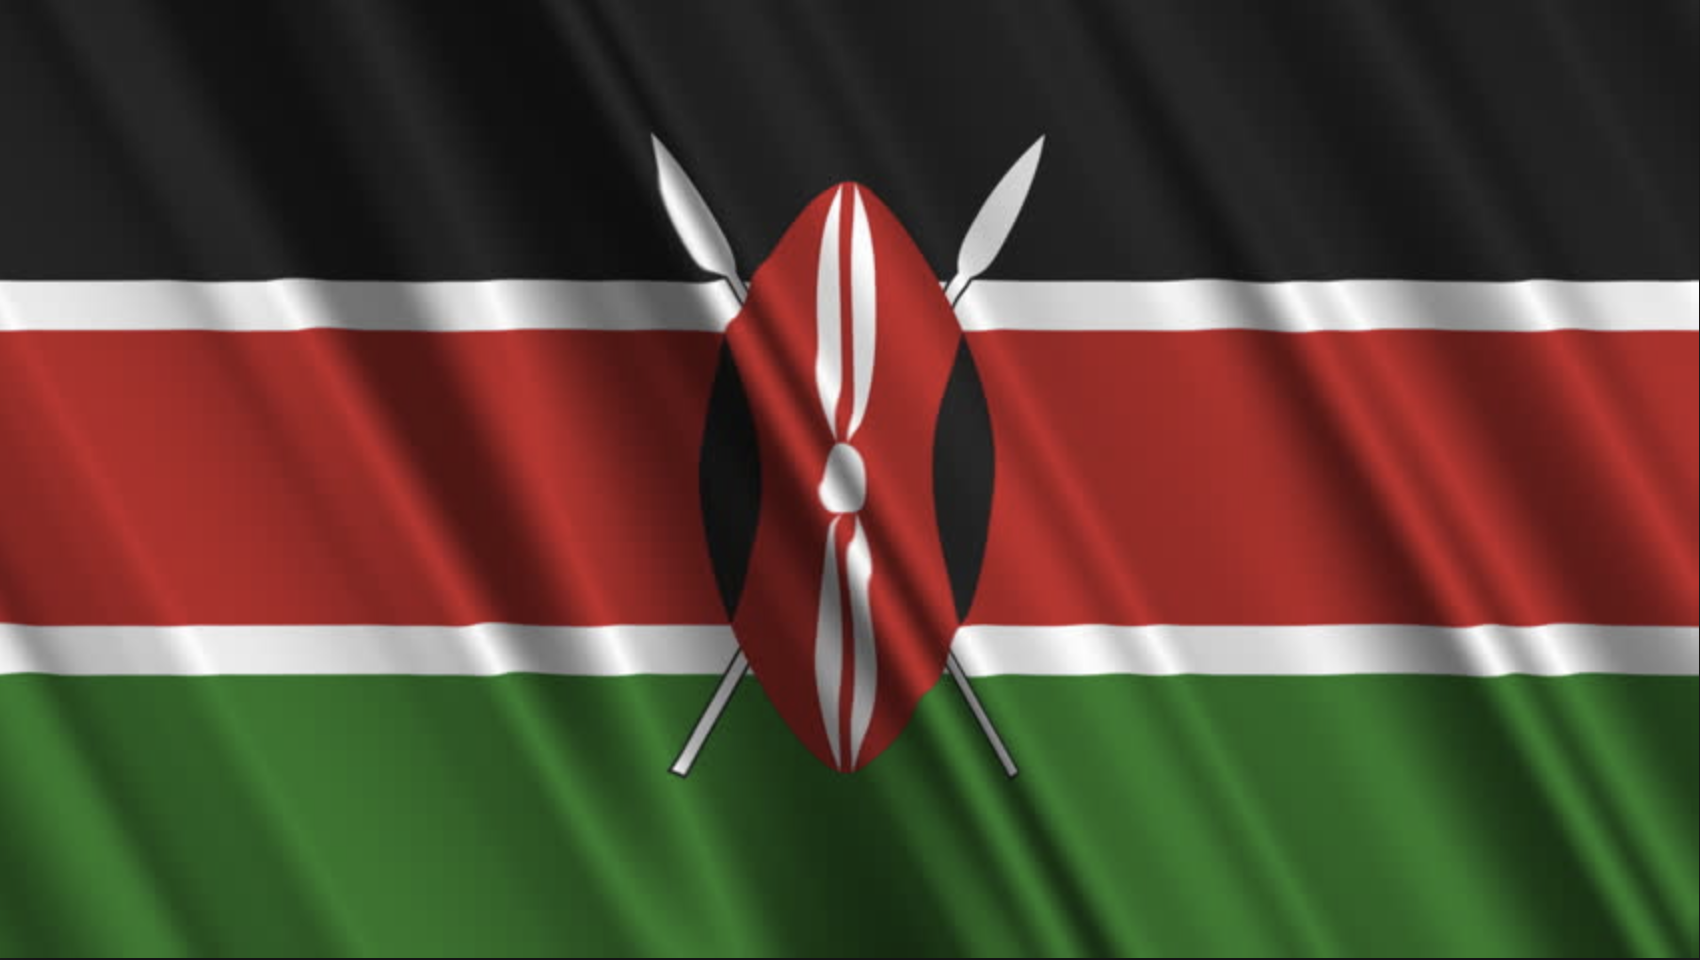 Call of Hope - Kenya Flag